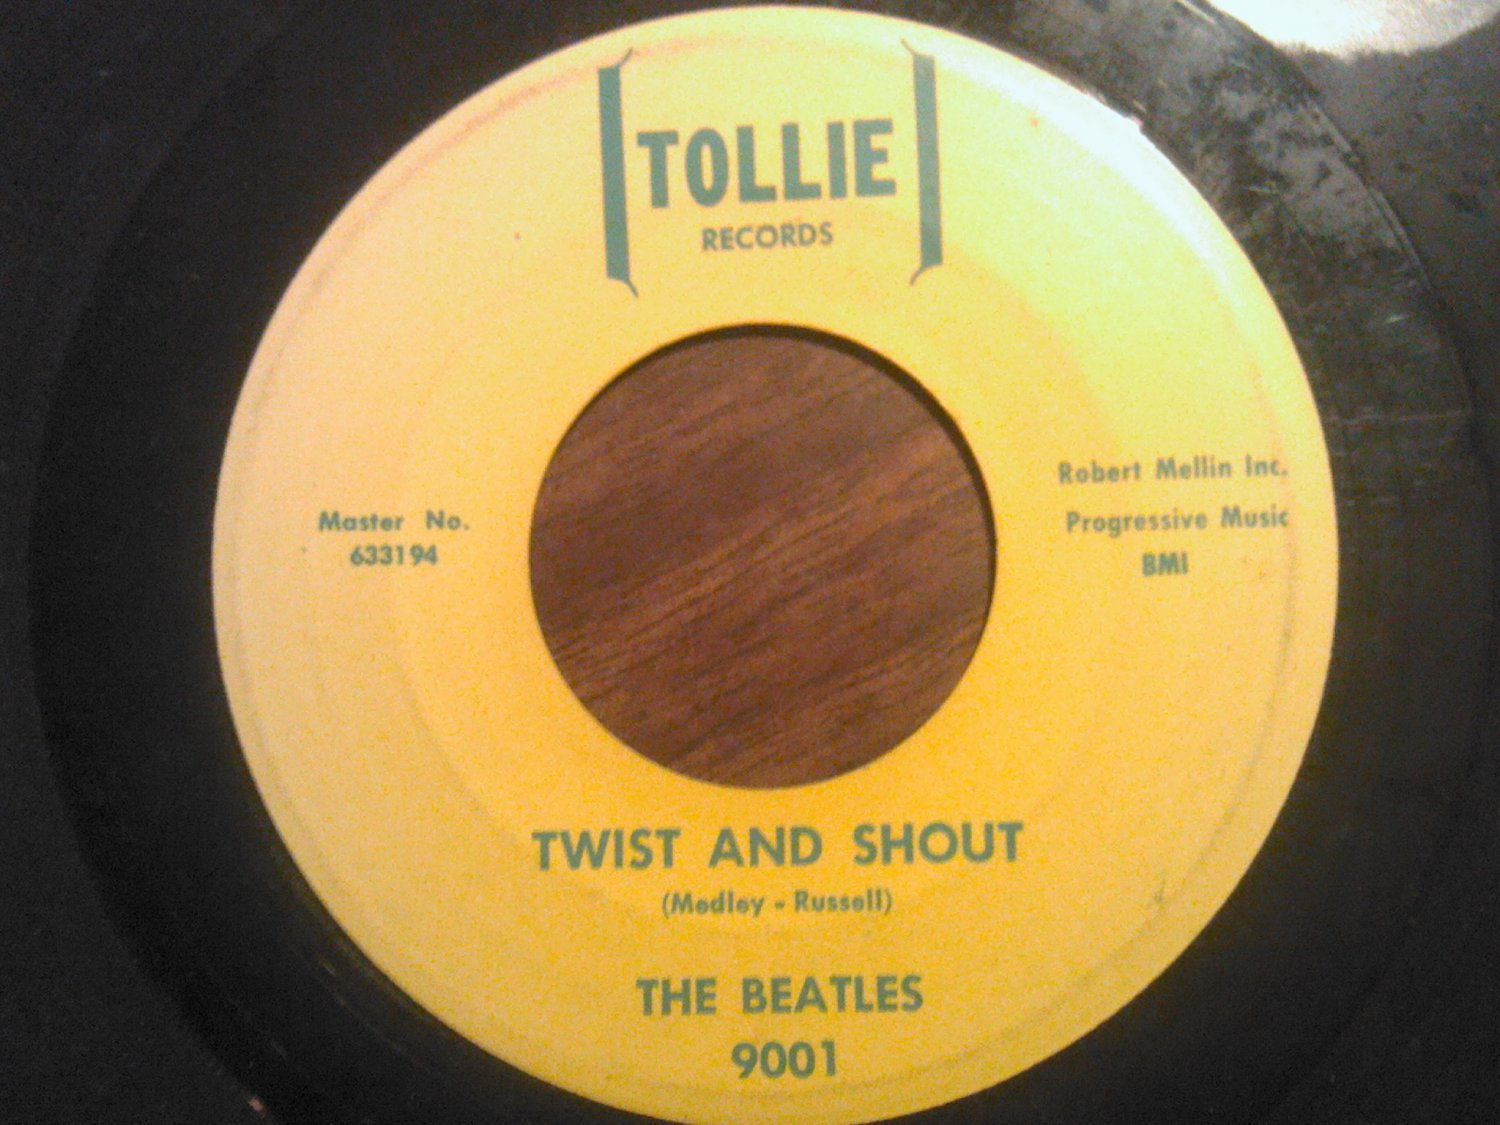 45 THE BEATLES Twist And Shout b/w There's A Place tollie yellow vintage vinyl record SALE